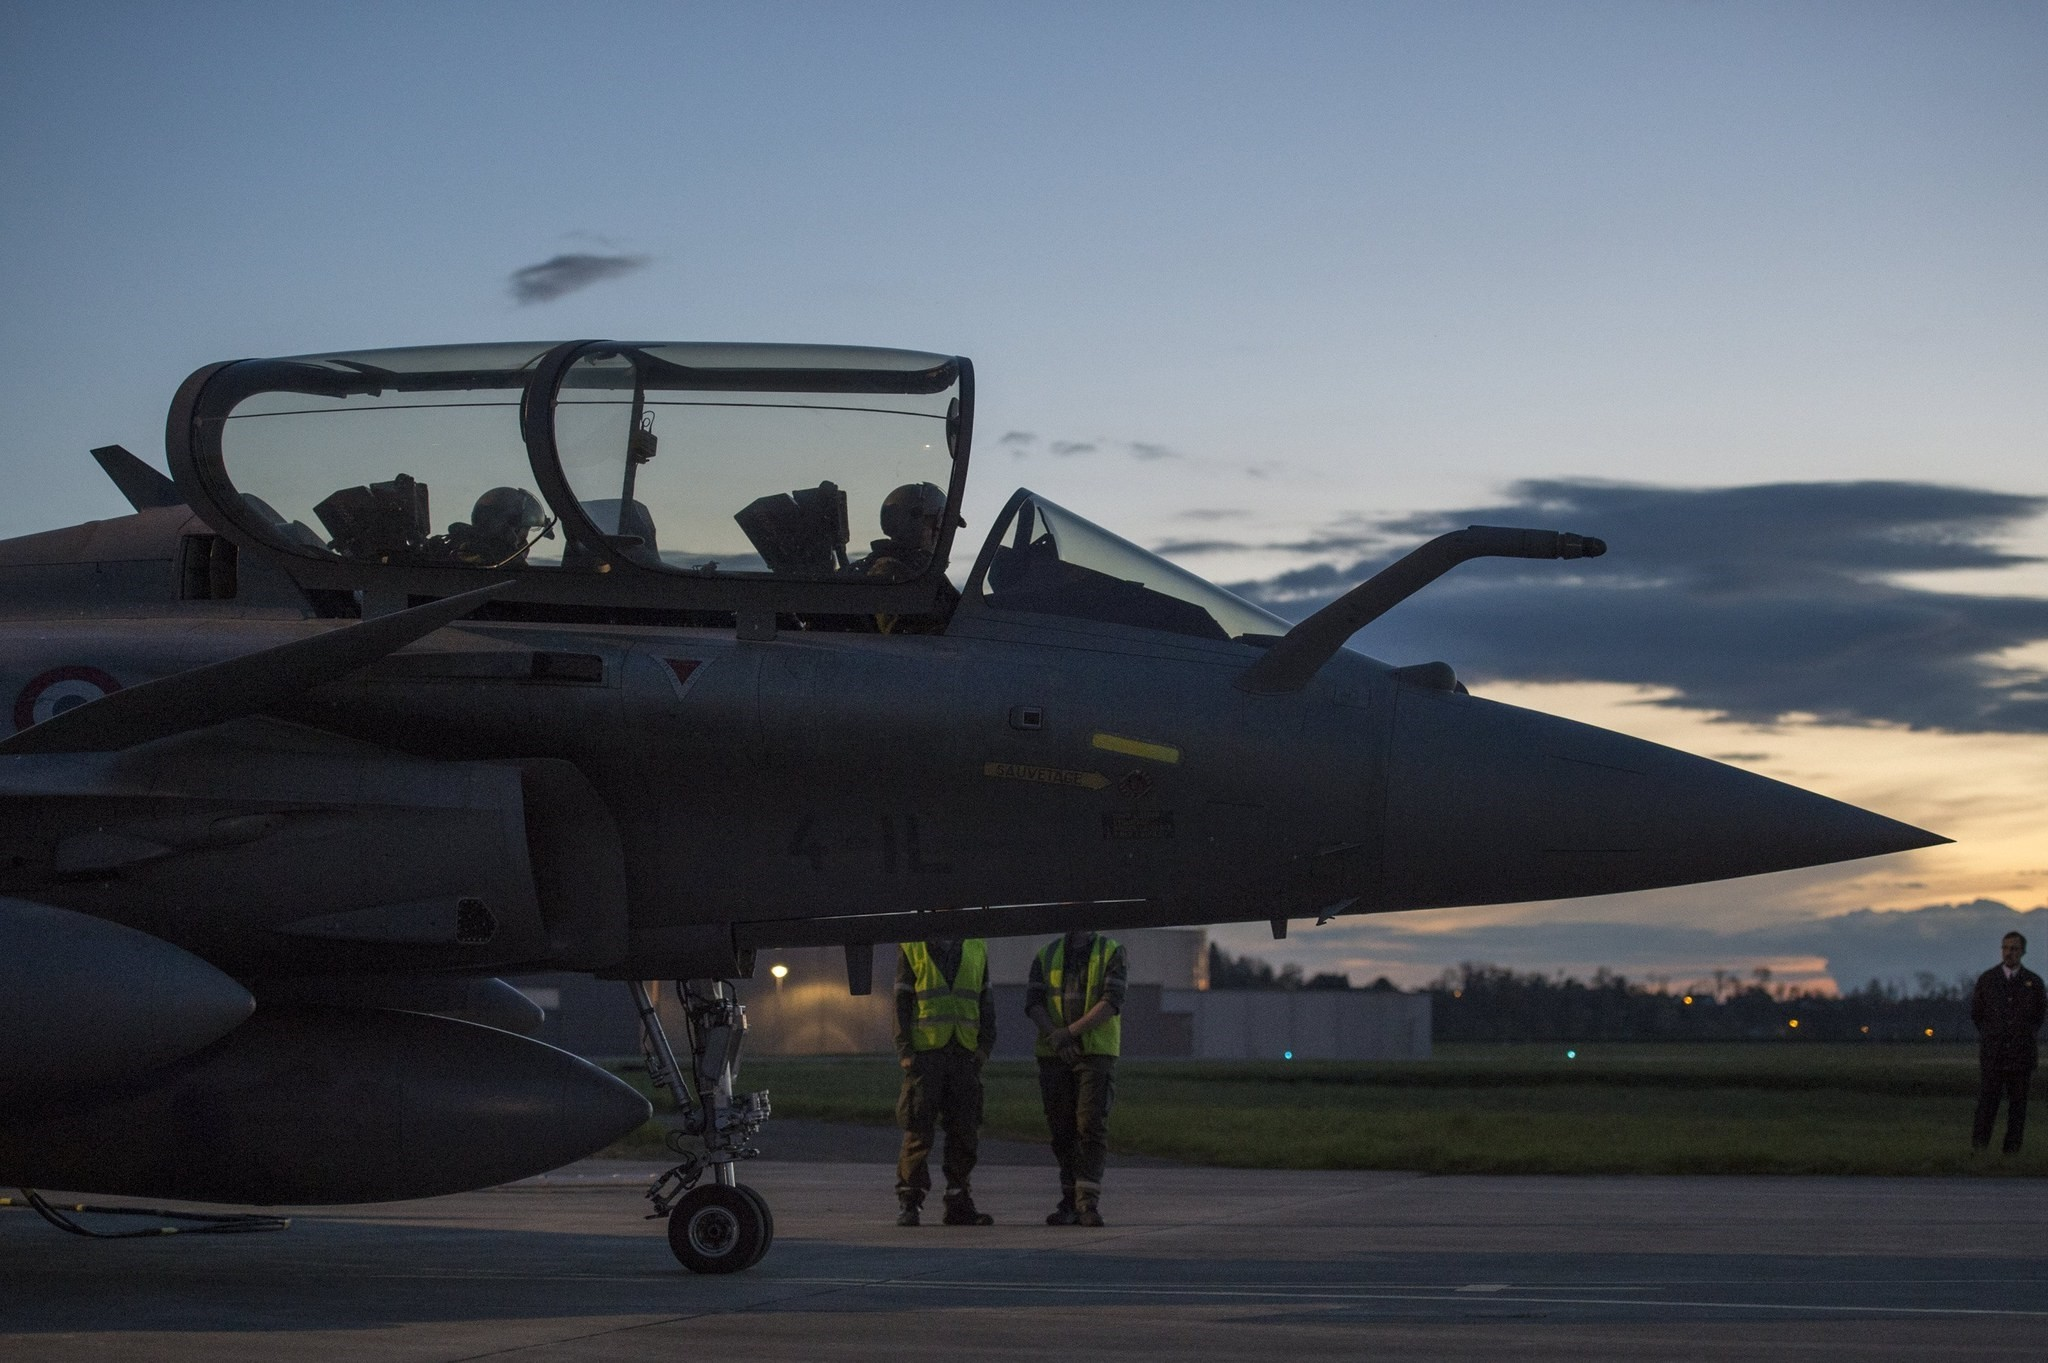 Photo made available by the French Defence audiovisual communication and production unit (ECPAD) shows Rafale warplanes preparing for take off at the Saint-Dizier aerial military base, eastern France, late 13 April 2018.